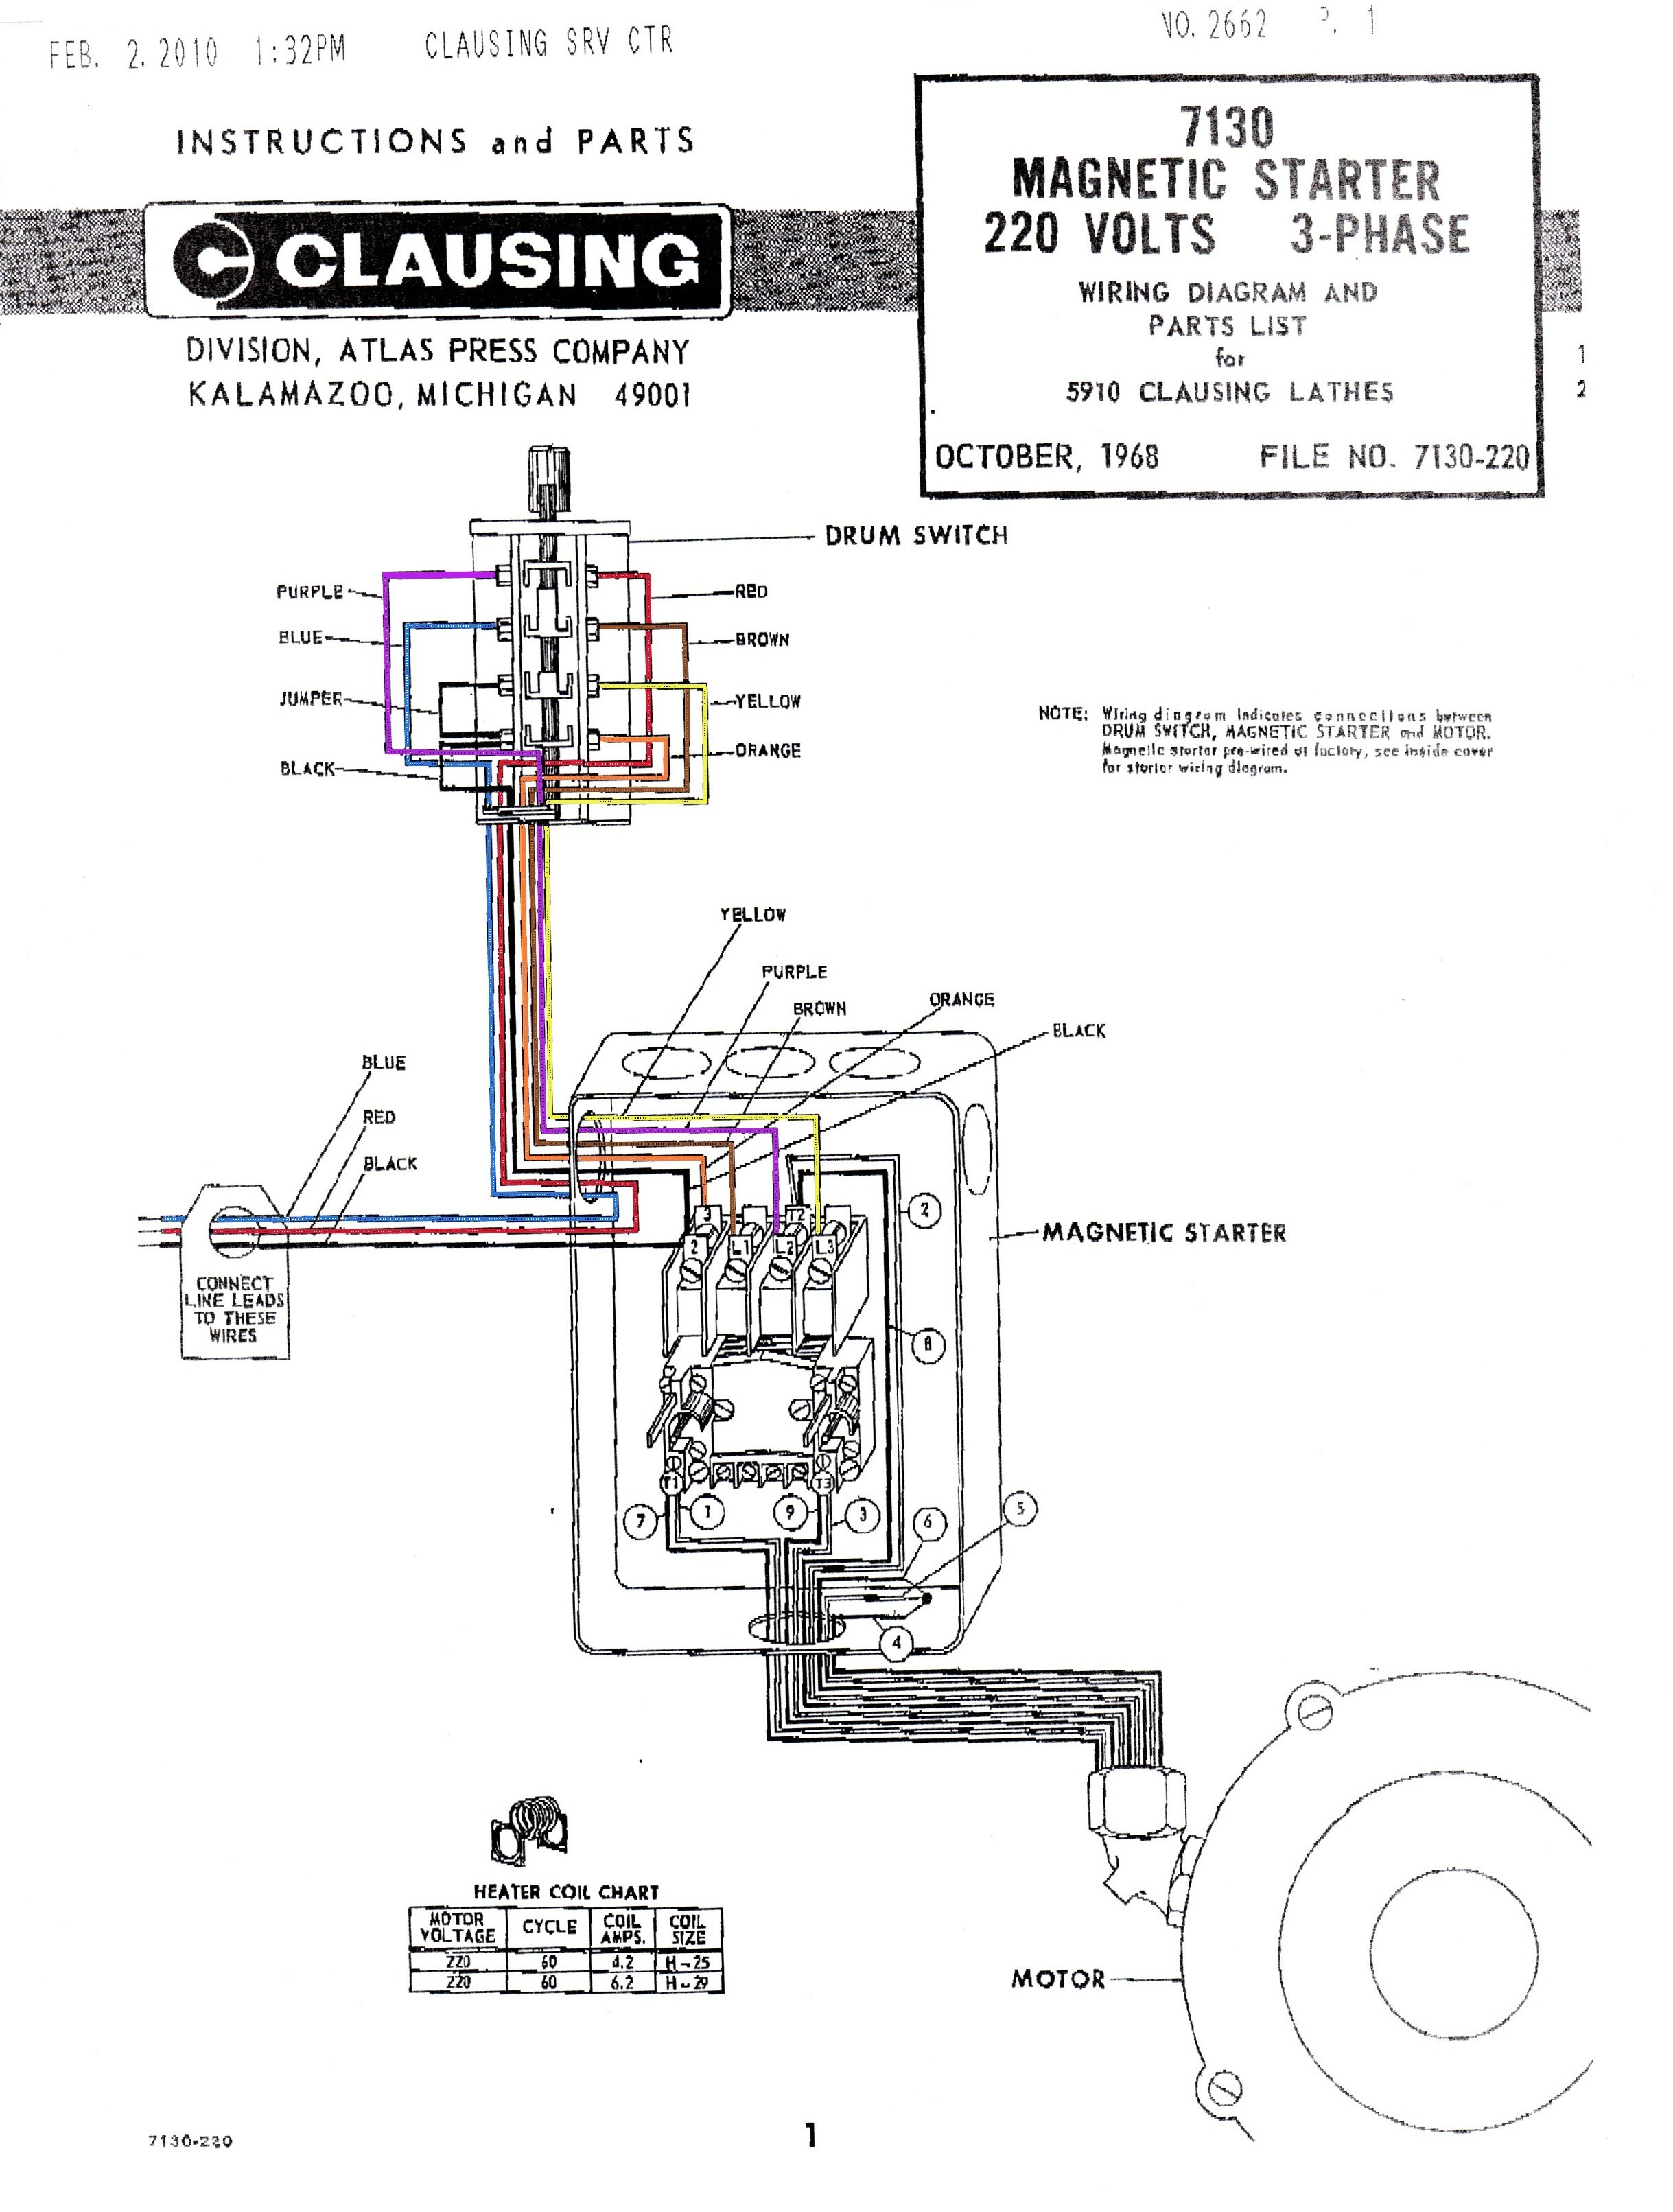 Single phase motor starter wiring diagram wiring diagram single motor wiring diagram of single phase related post asfbconference2016 Gallery